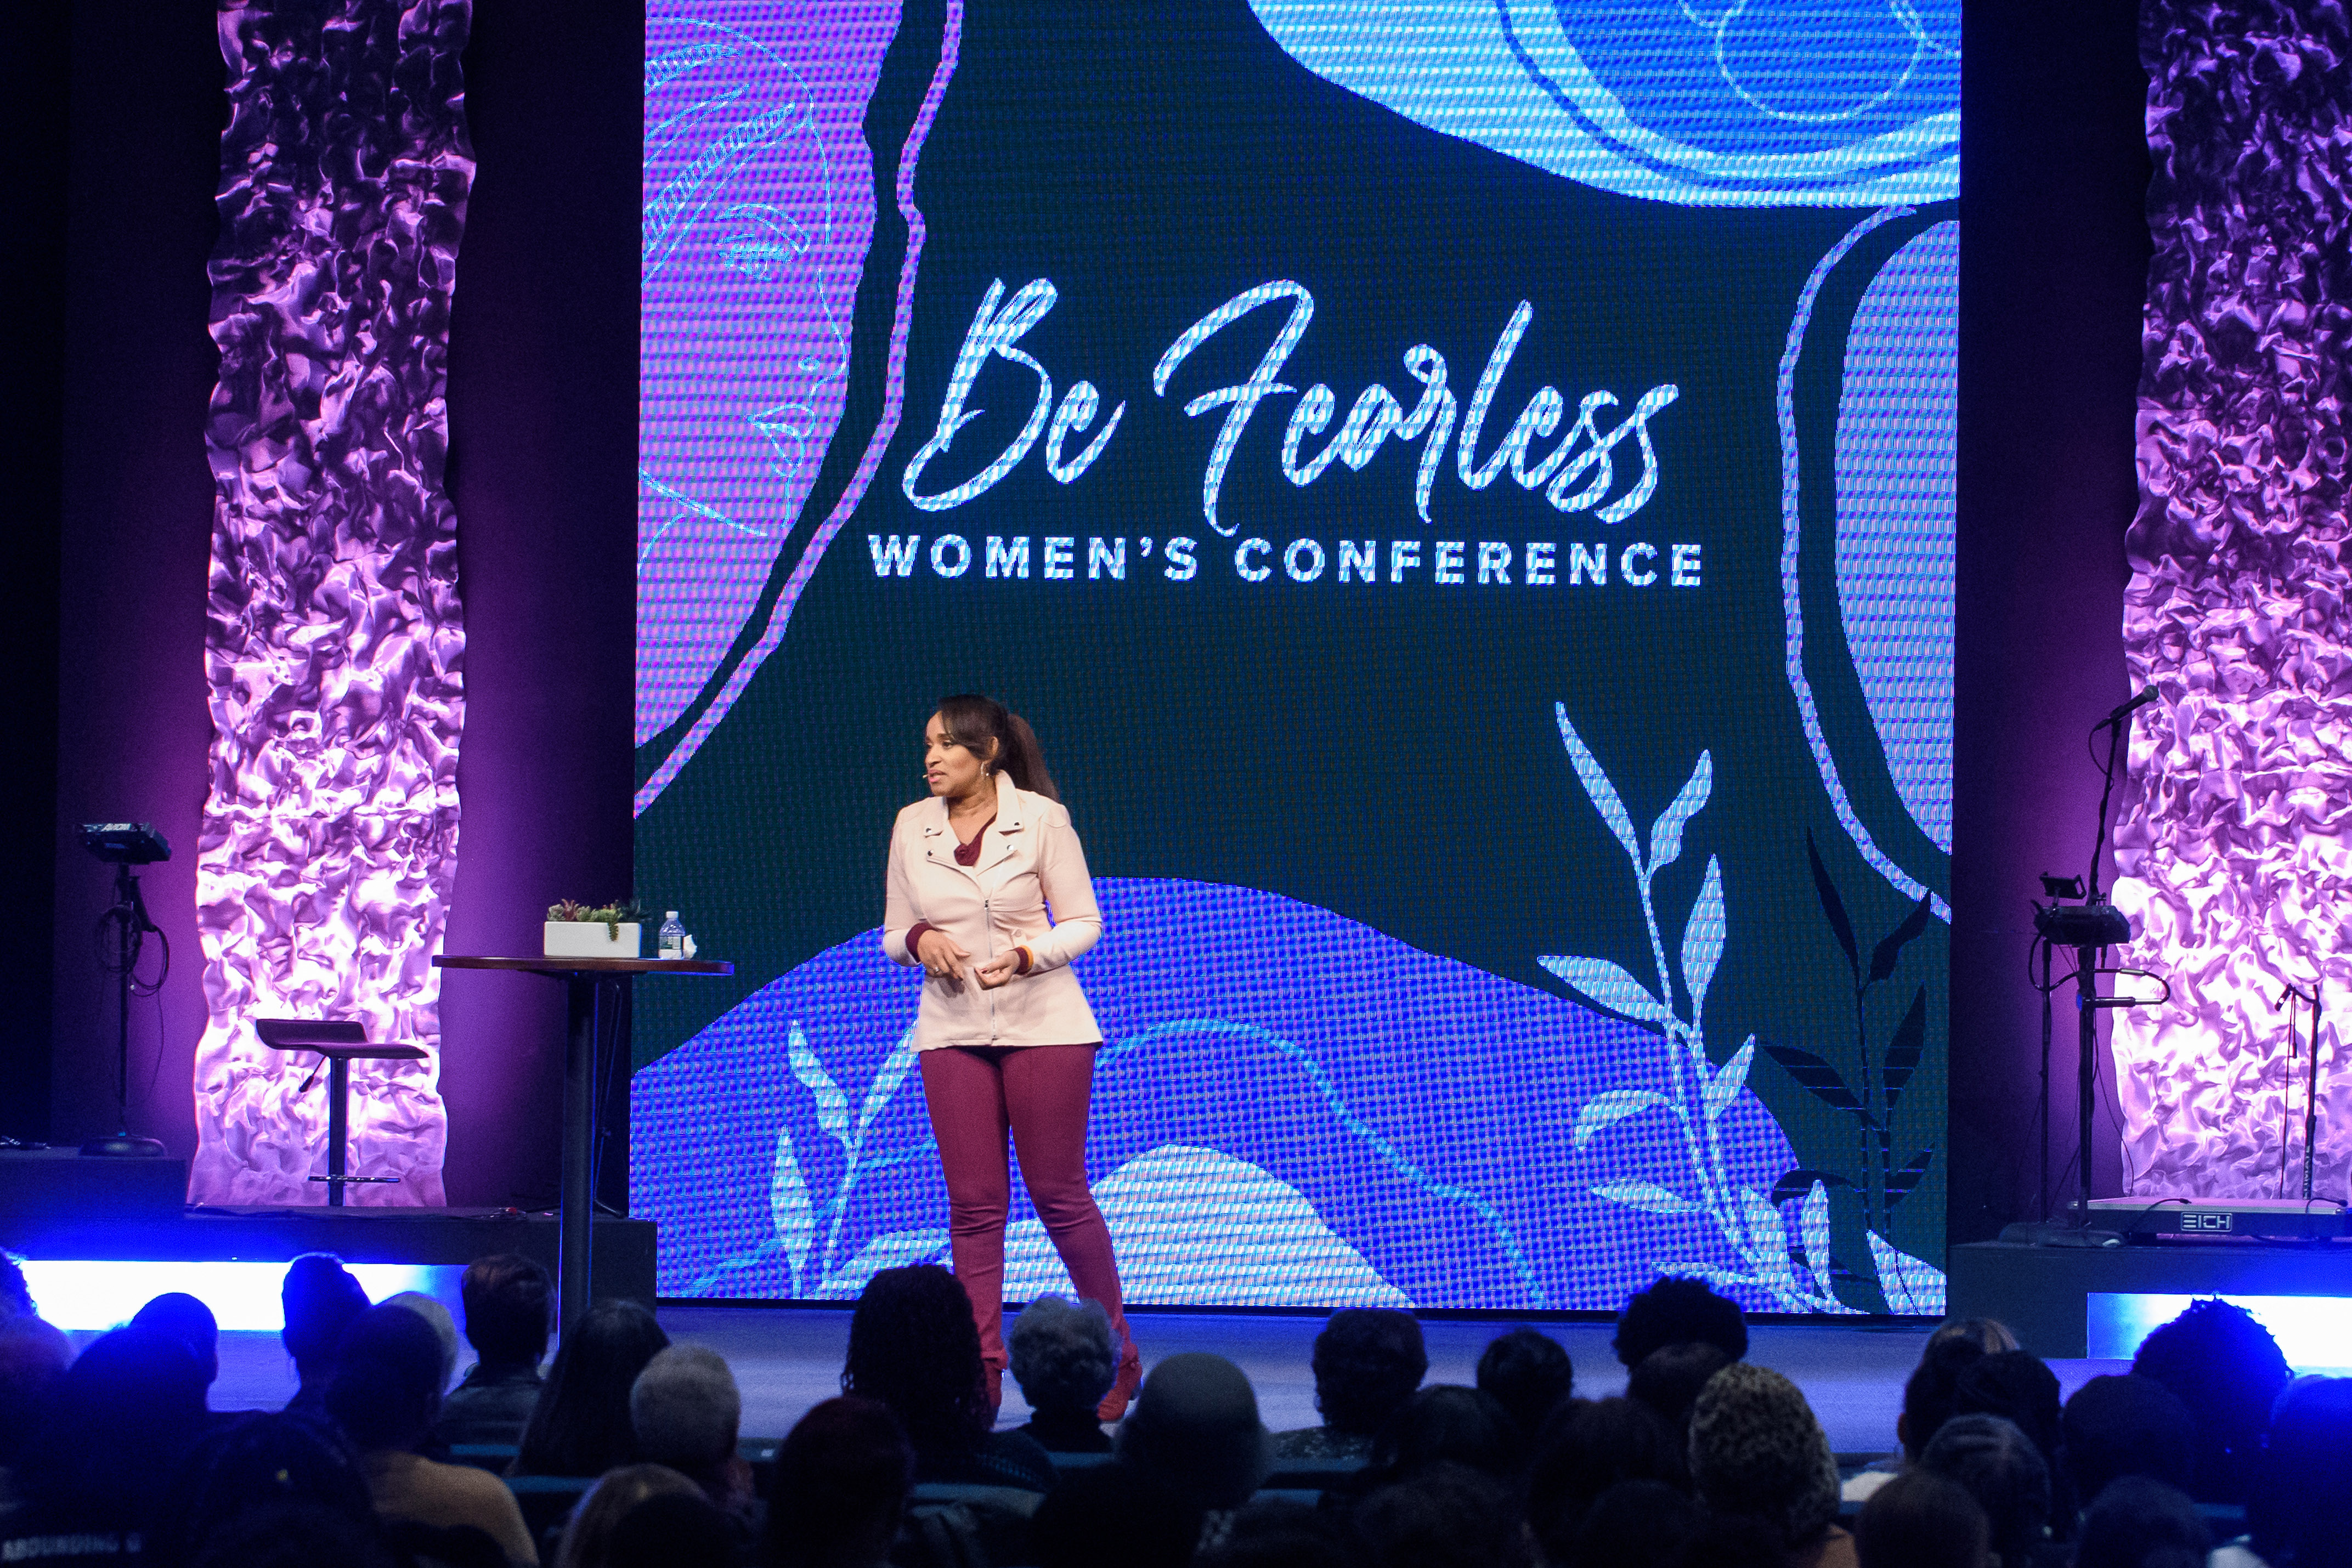 Fearless Women's Conference